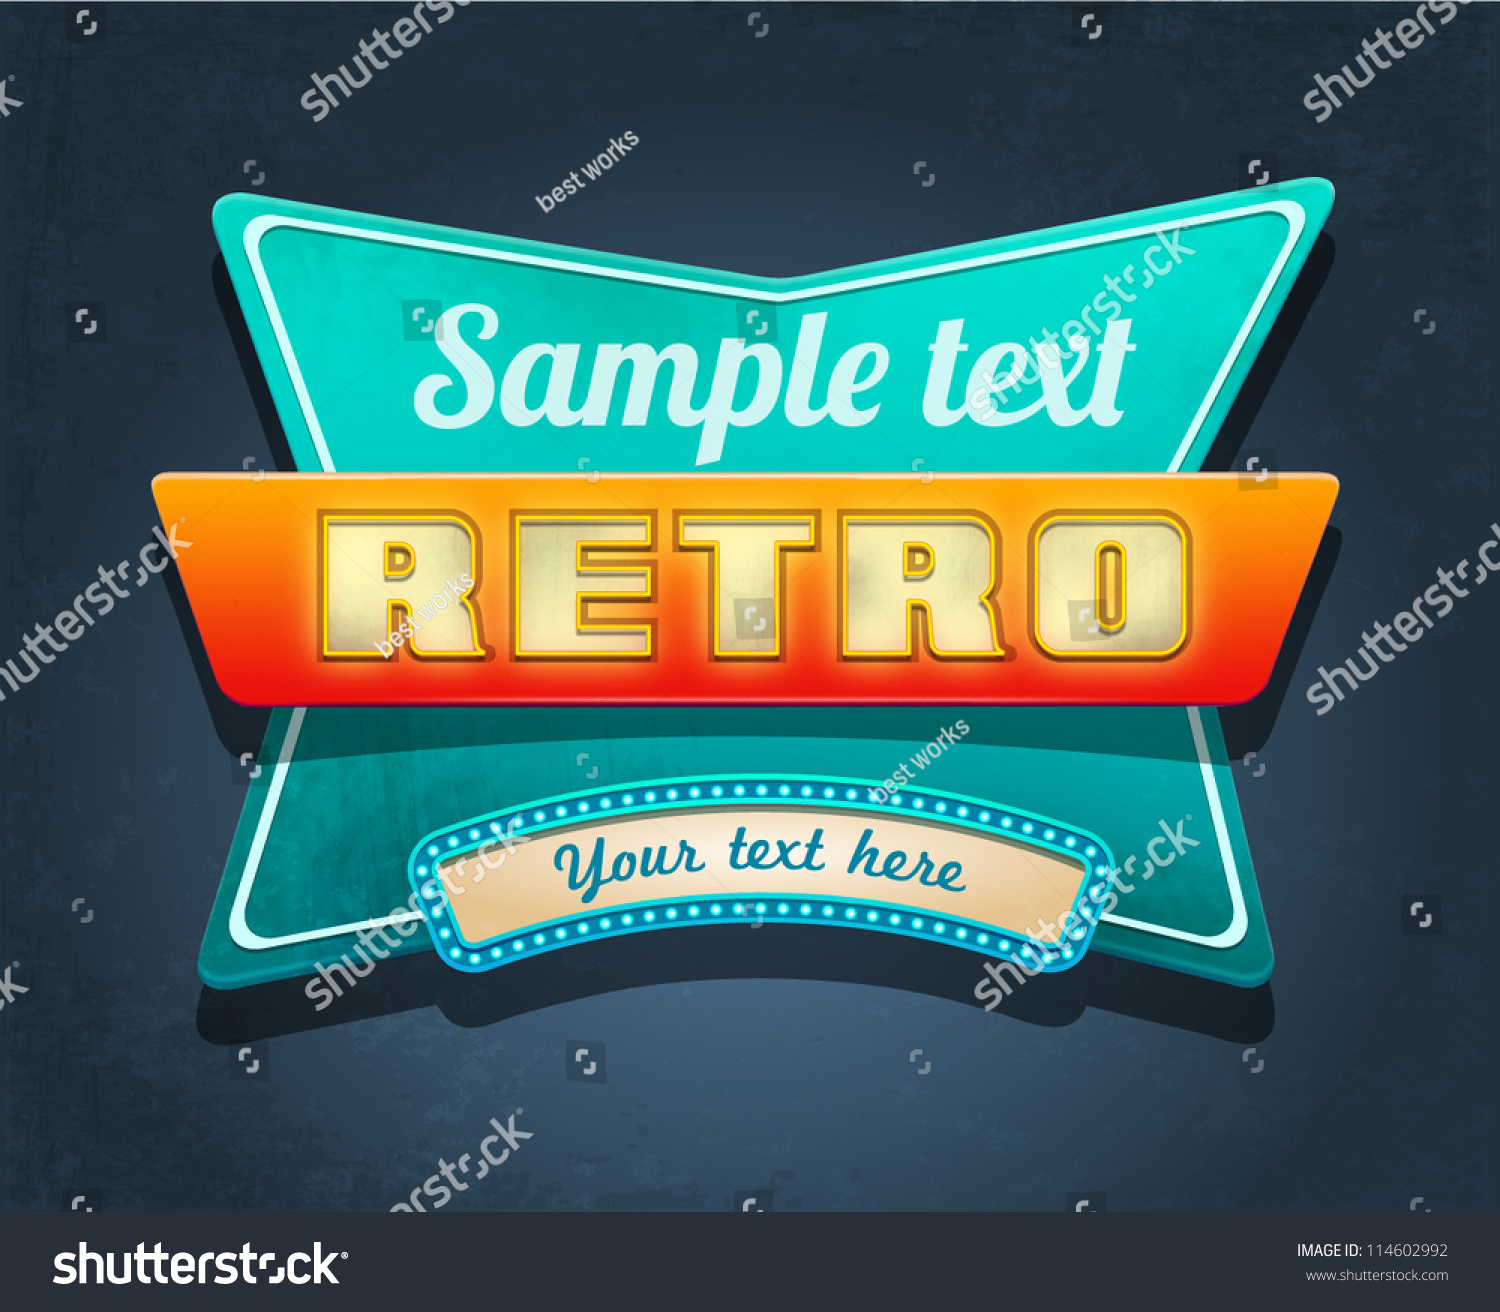 Royalty-free Retro motel sign. Vector #114602992 Stock ...